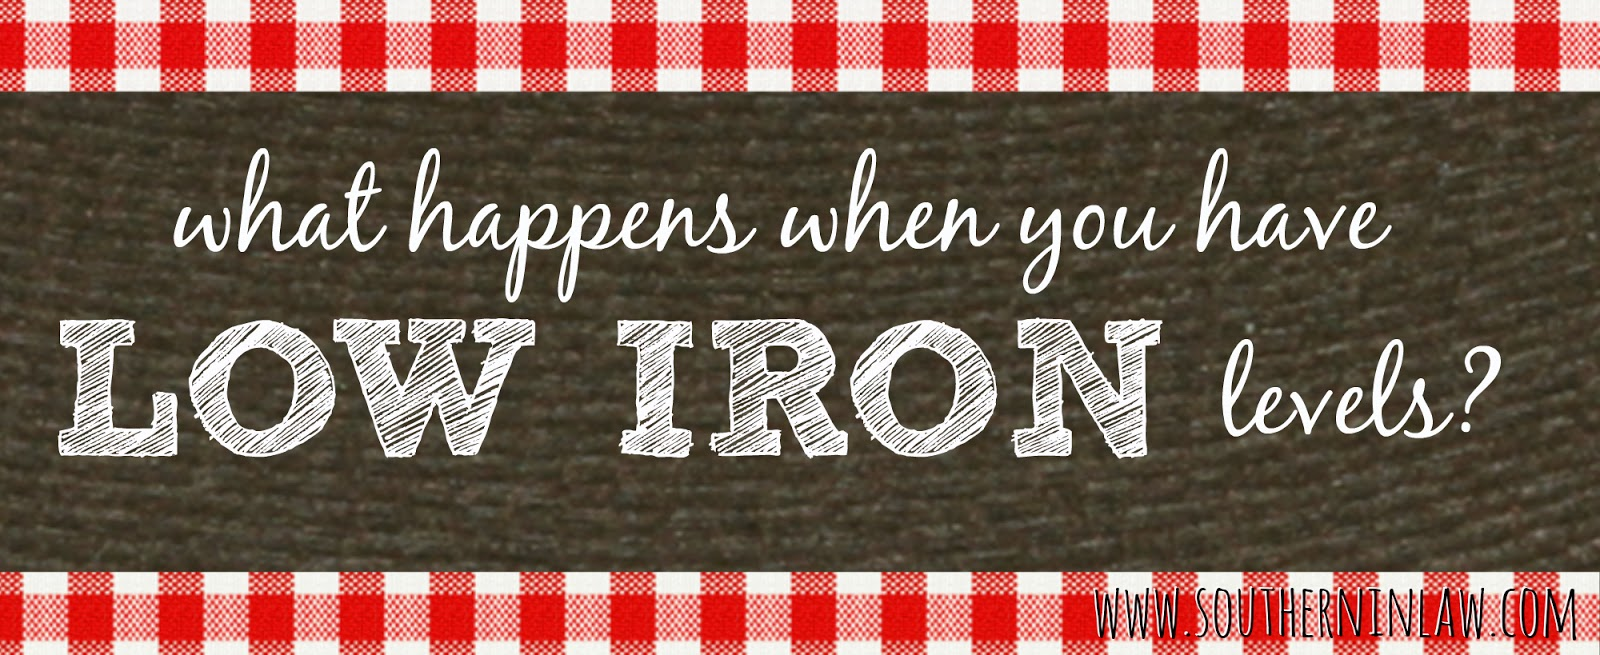 What happens when you have low iron levels? What happens when you have anaemia?